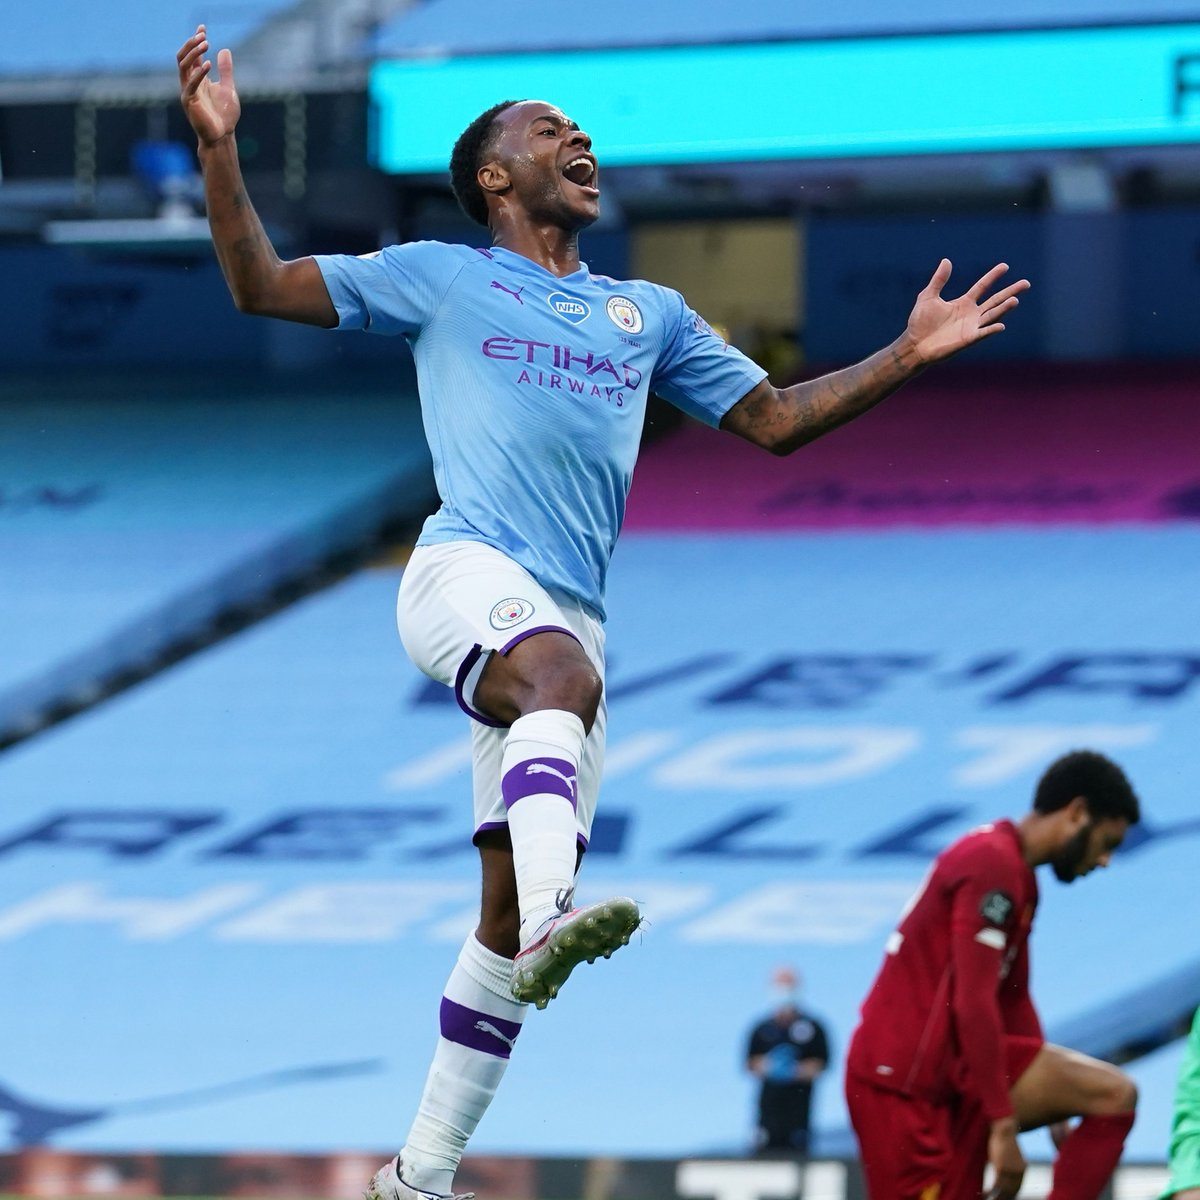 This is the first time we have been 4️⃣ goals down in a Premier League game since September 2017, which was also against Manchester City at the Etihad Stadium (5-0 defeat). #MCILIV #LFC